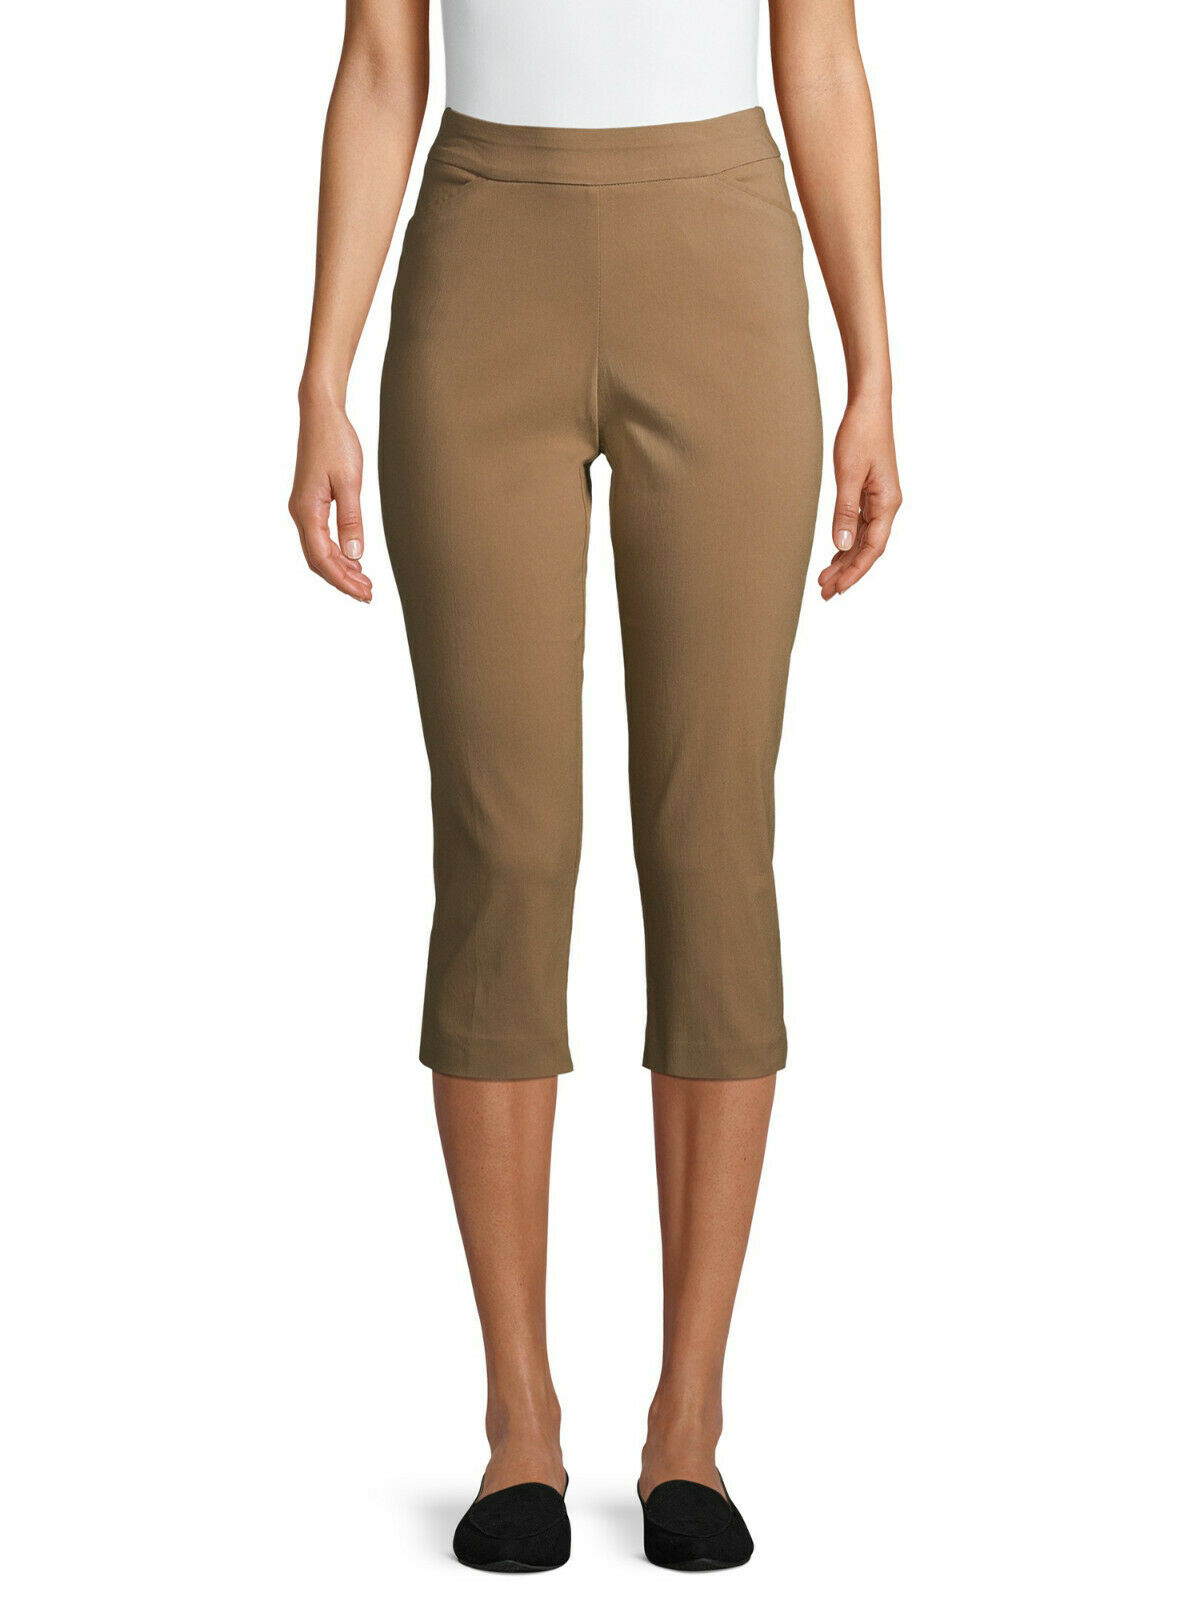 ***NEW TIME & TRU MID RISE STRETCH MILLENNIUM CAPRIS TOASTED BROWN XL Clothing, Shoes & Accessories